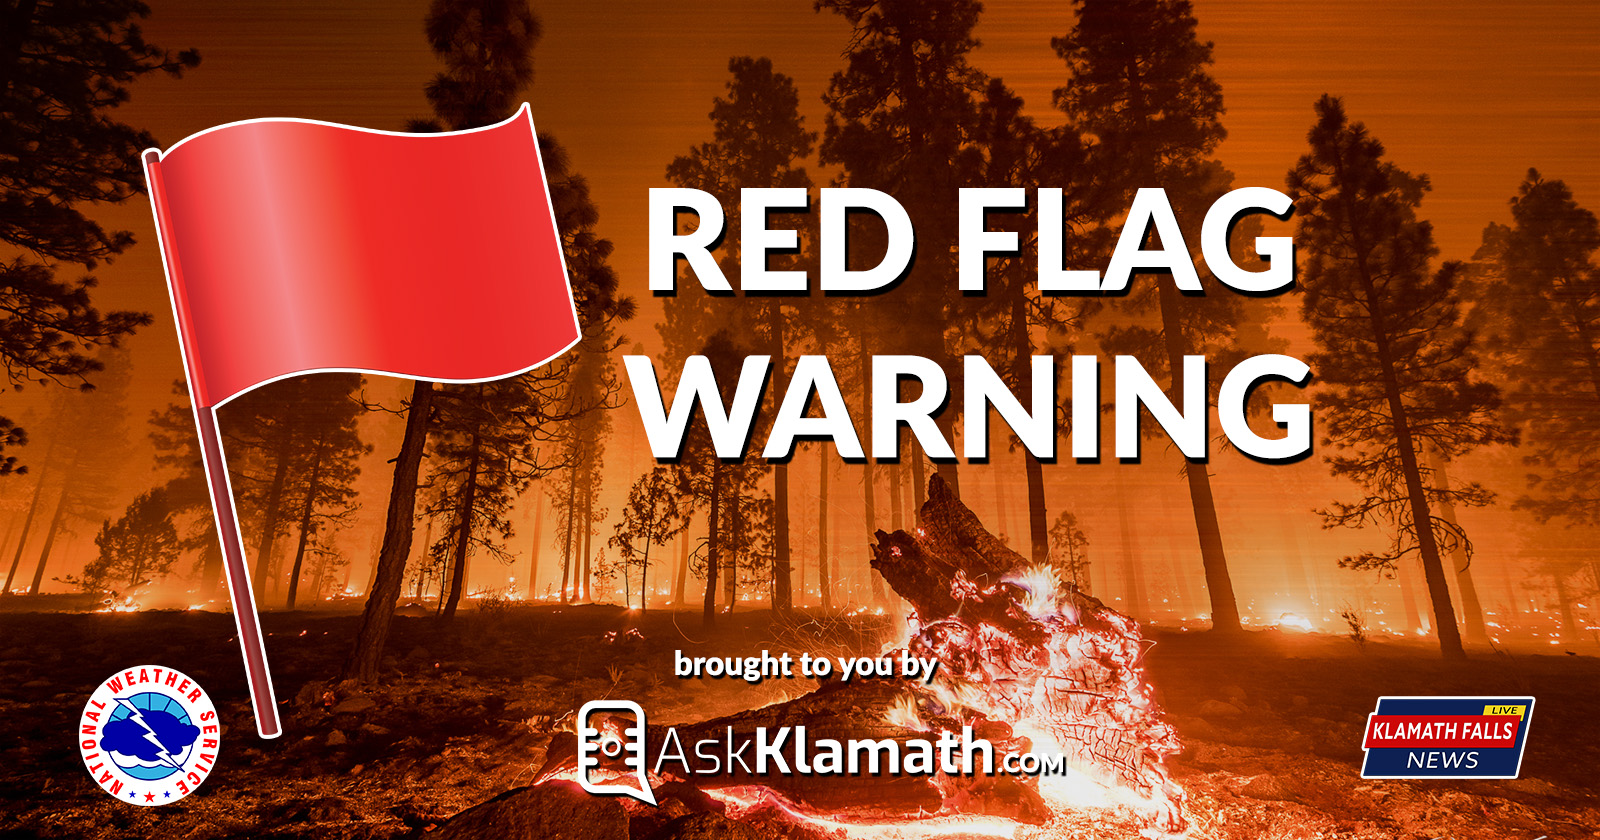 Fire Weather - Red Flag Warning 2018 - Ask Klamath.jpg